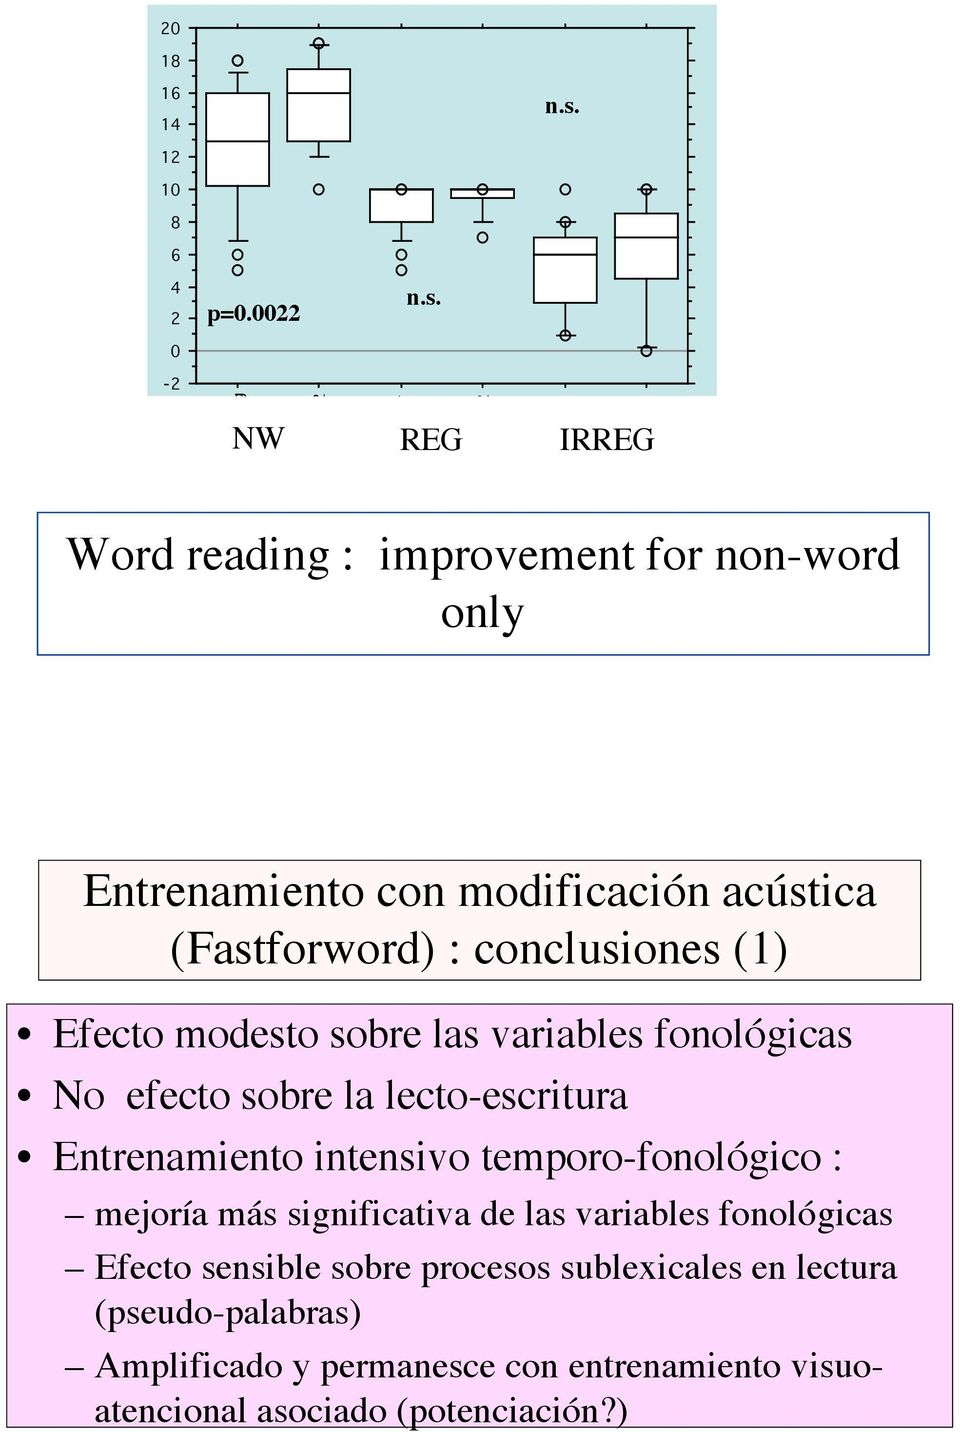 -2 lect log lect log 2 lect régulier NW REG IRREG lect régu 2 lect irréguliers lect irrég 2 Word reading : improvement for non-word only